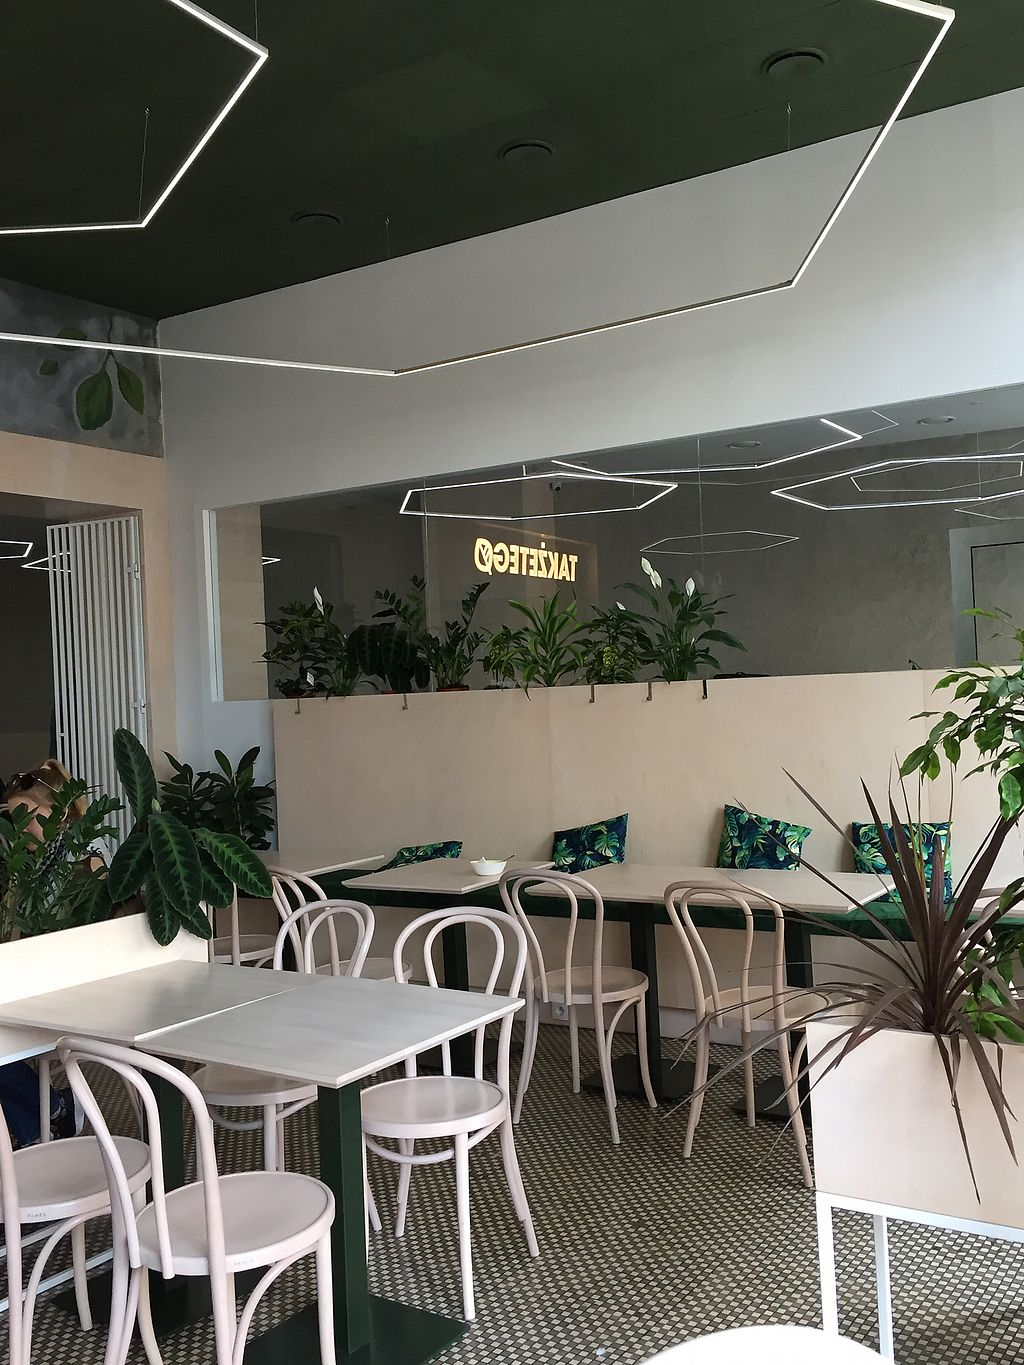 """Photo of Takzetego Wege Bistro  by <a href=""""/members/profile/qwertzbazi"""">qwertzbazi</a> <br/>Seating area  <br/> April 13, 2018  - <a href='/contact/abuse/image/113859/385139'>Report</a>"""